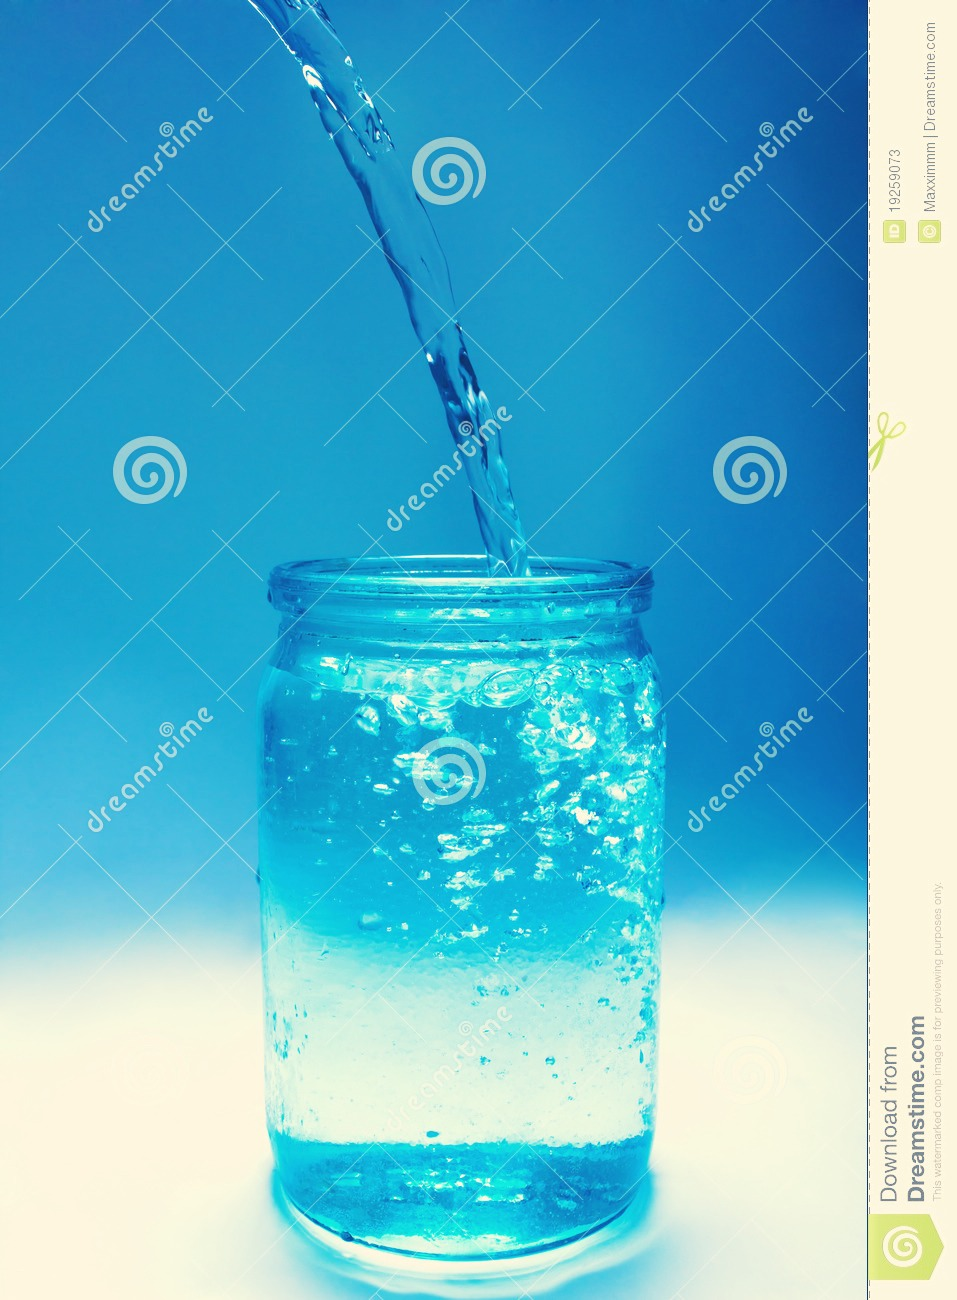 (I didn't take a picture if the next step, sorry.) But now pour water in your jar ( not fully) leave less than an inch of air and add a few drops of glycerin if you have any, ( it makes the water thicker) add your fine glitter, finally, as much as you prefer, just don't over do it:)